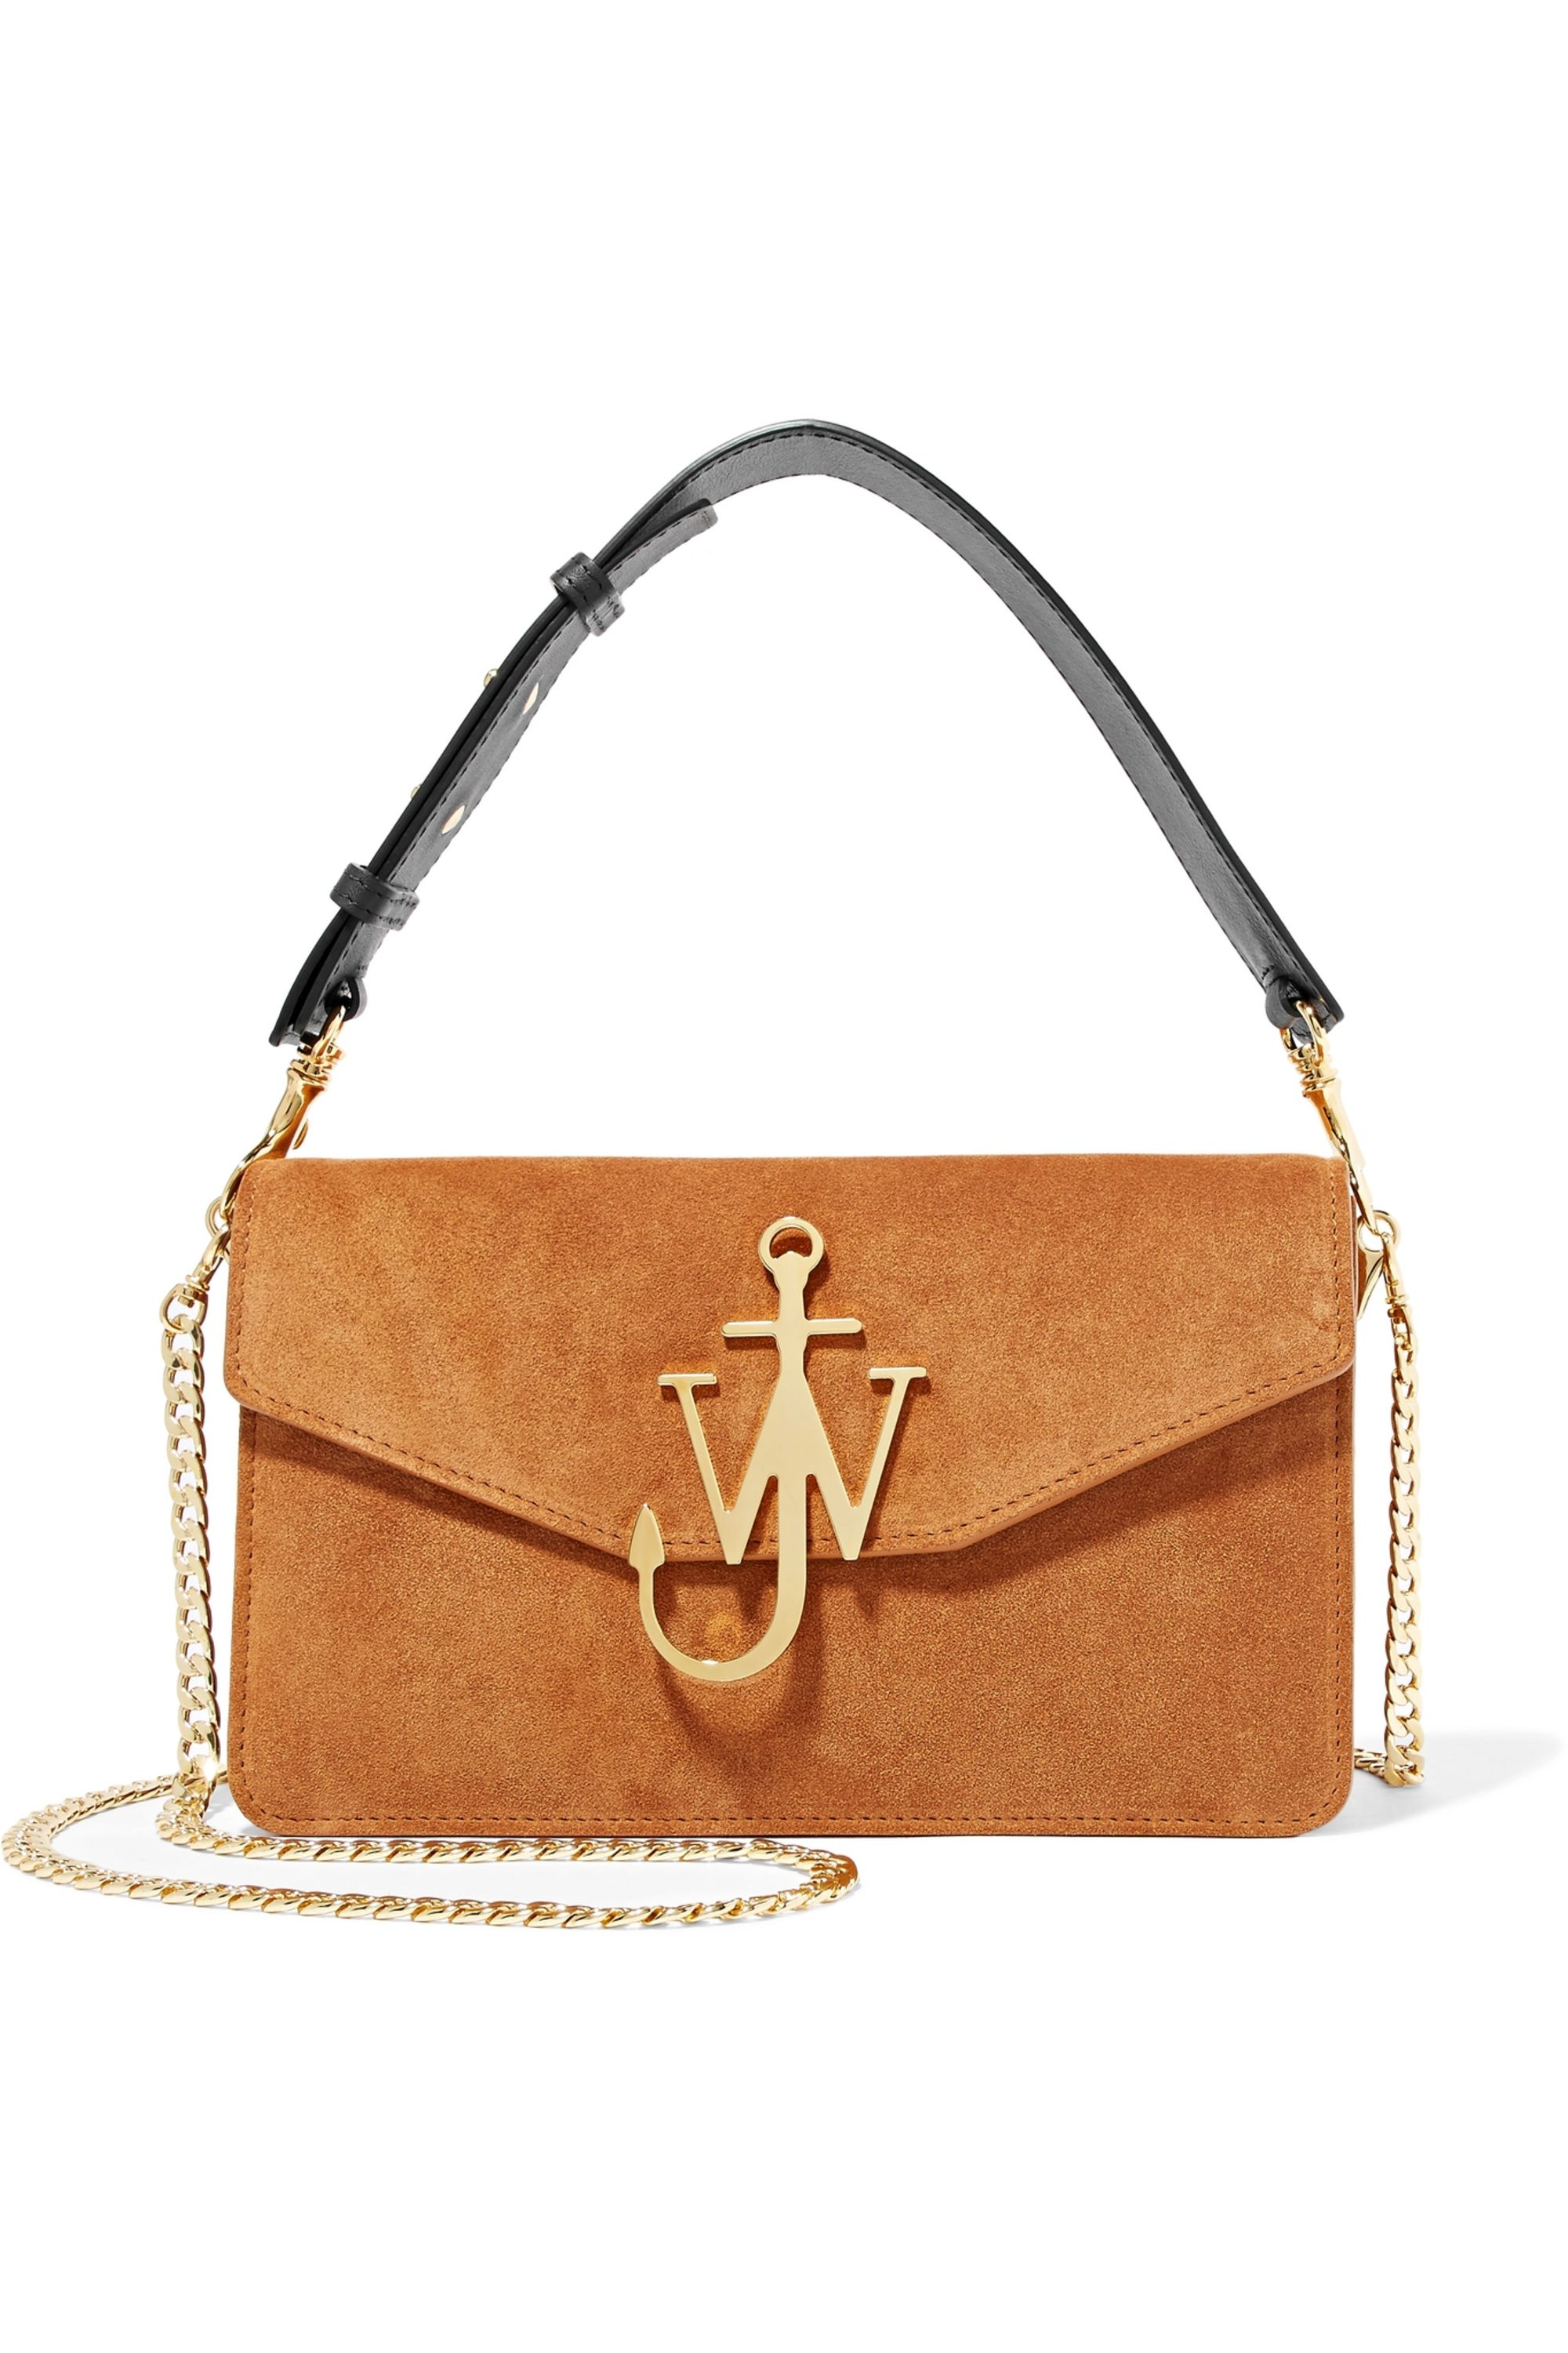 JW Anderson Logo leather-trimmed suede shoulder bag